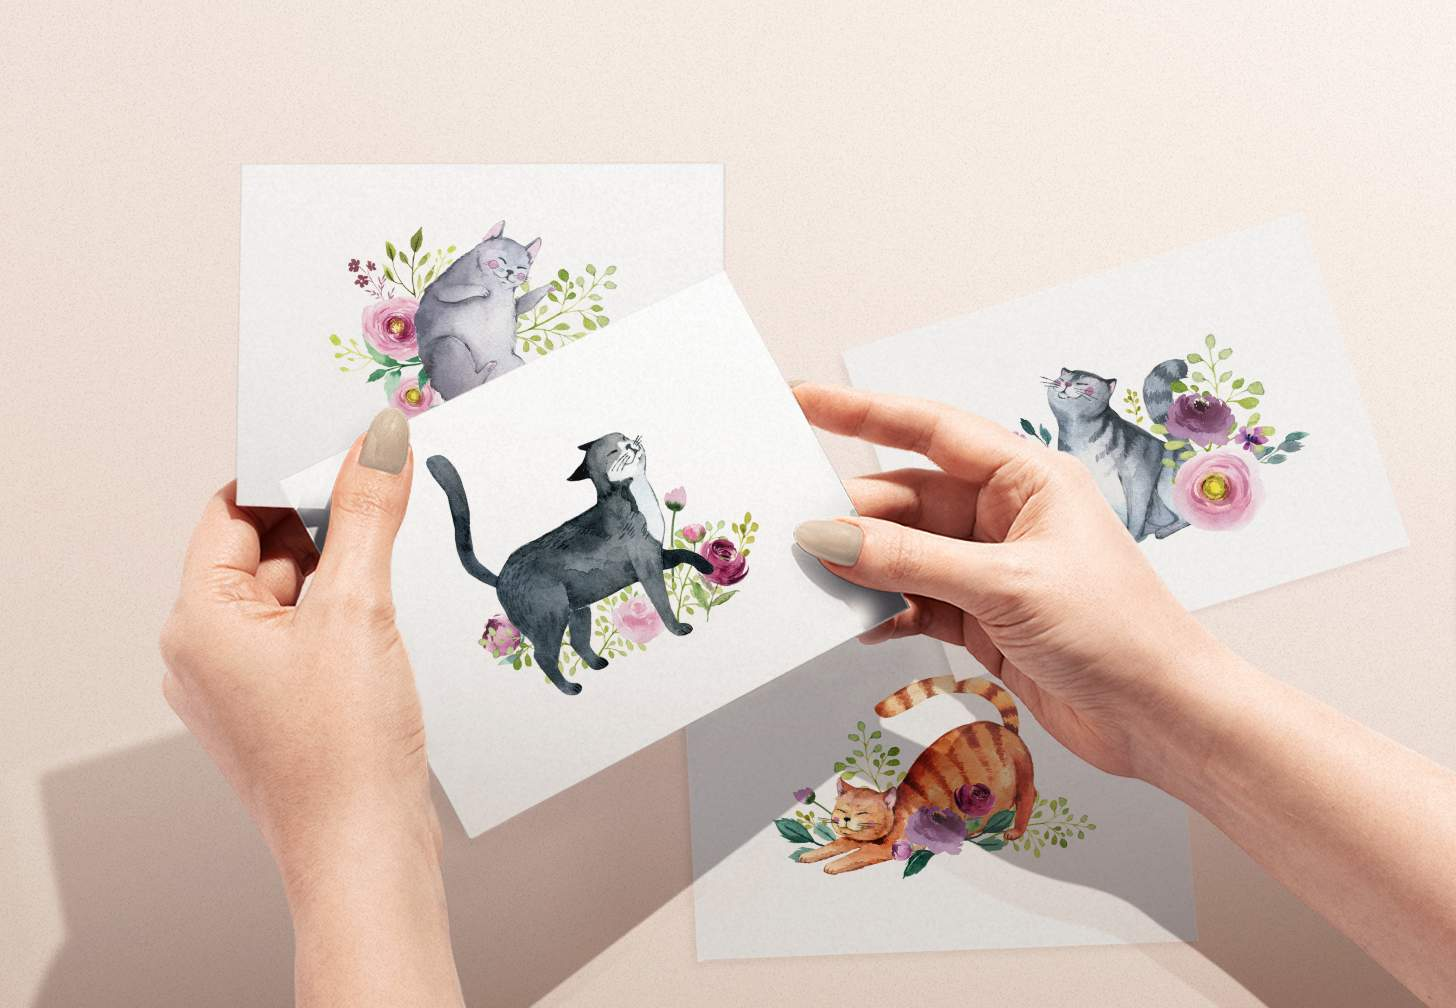 Hands holding black and white cat card with flowers with various cat designs in background